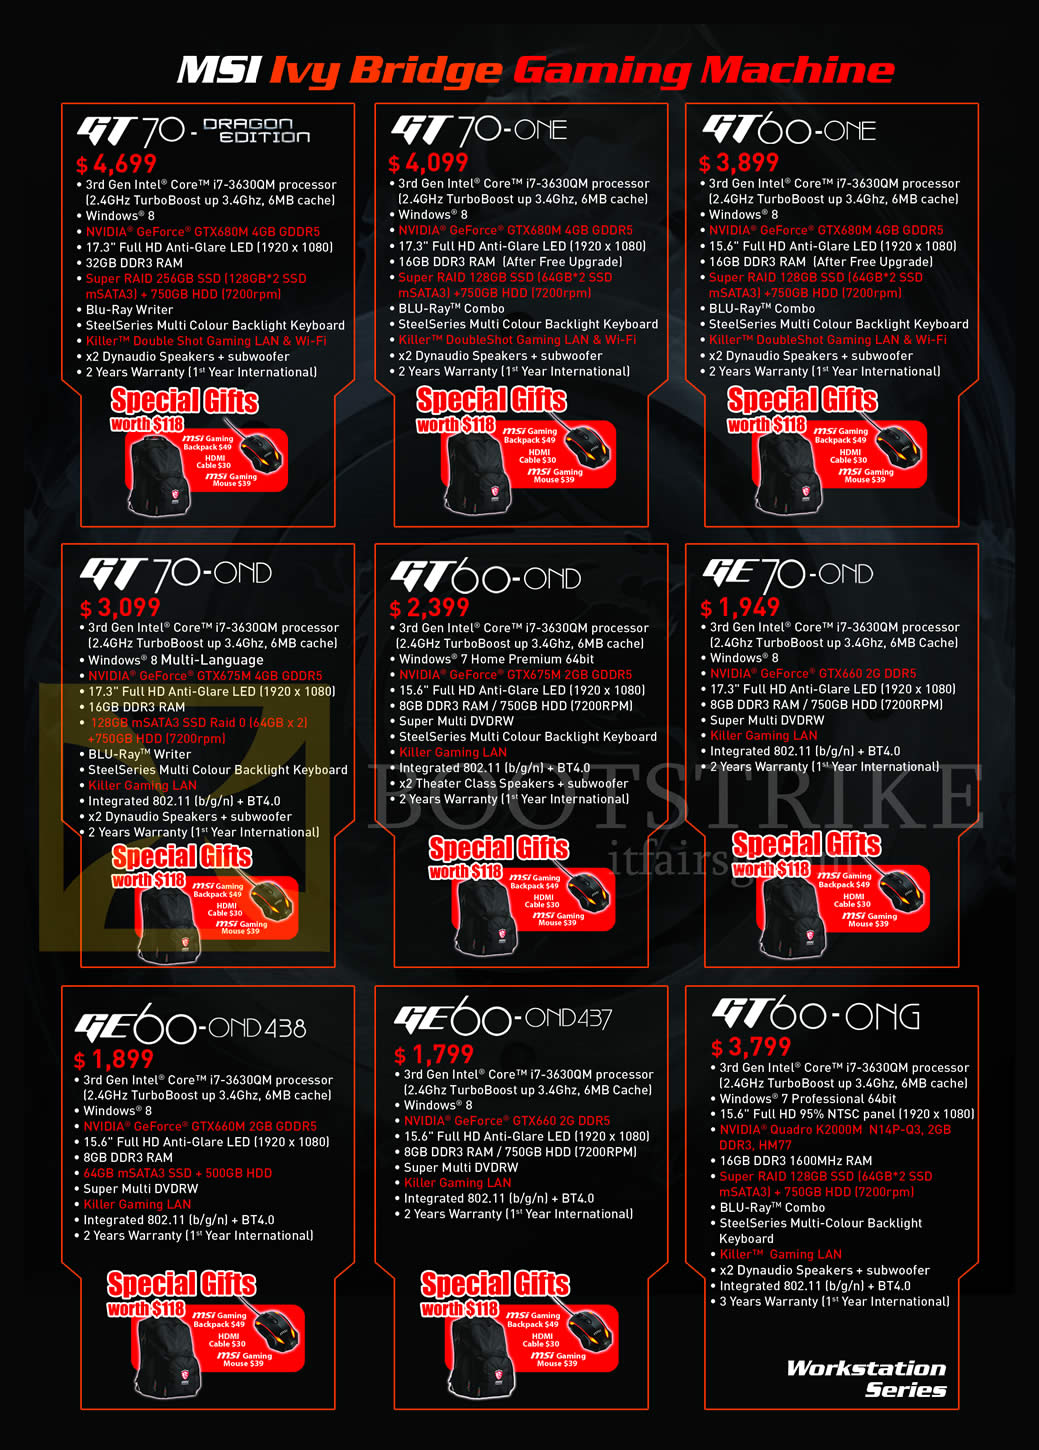 SITEX 2013 price list image brochure of MSI Desktop PCs Gaming GT70-Dragon, GT70-0NE, GT60-0NE, GT70-0ND, GE70-0Nd, GE60-0ND438, GE60-0ND437, GT60-0NG